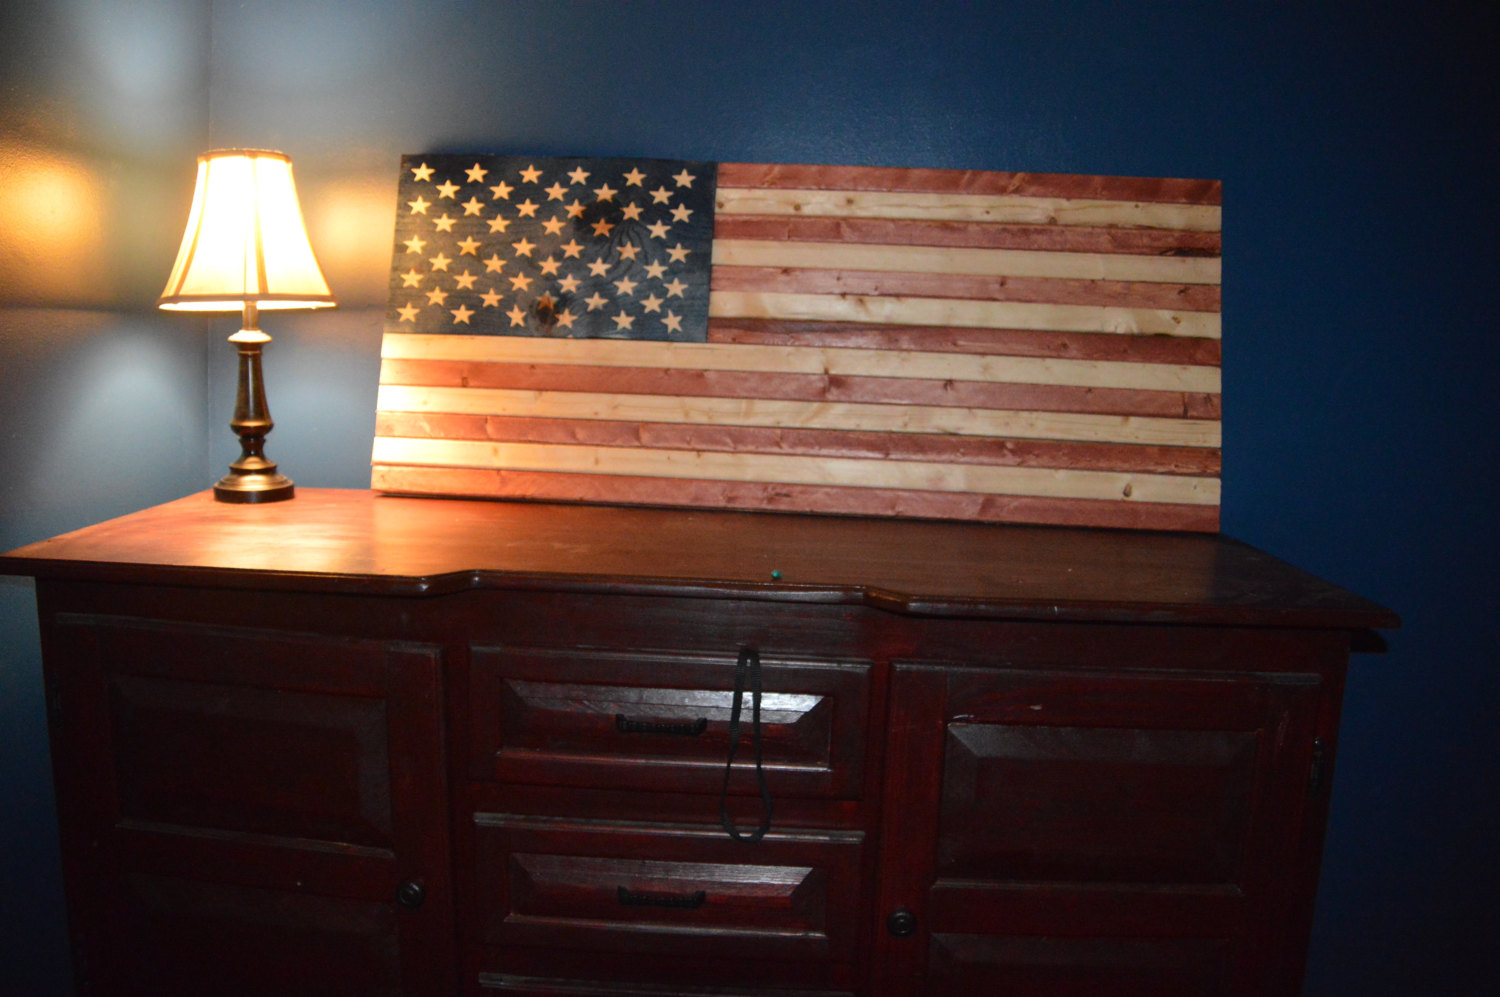 Well-liked Rustic American Flag – HomeSteadHow GG79